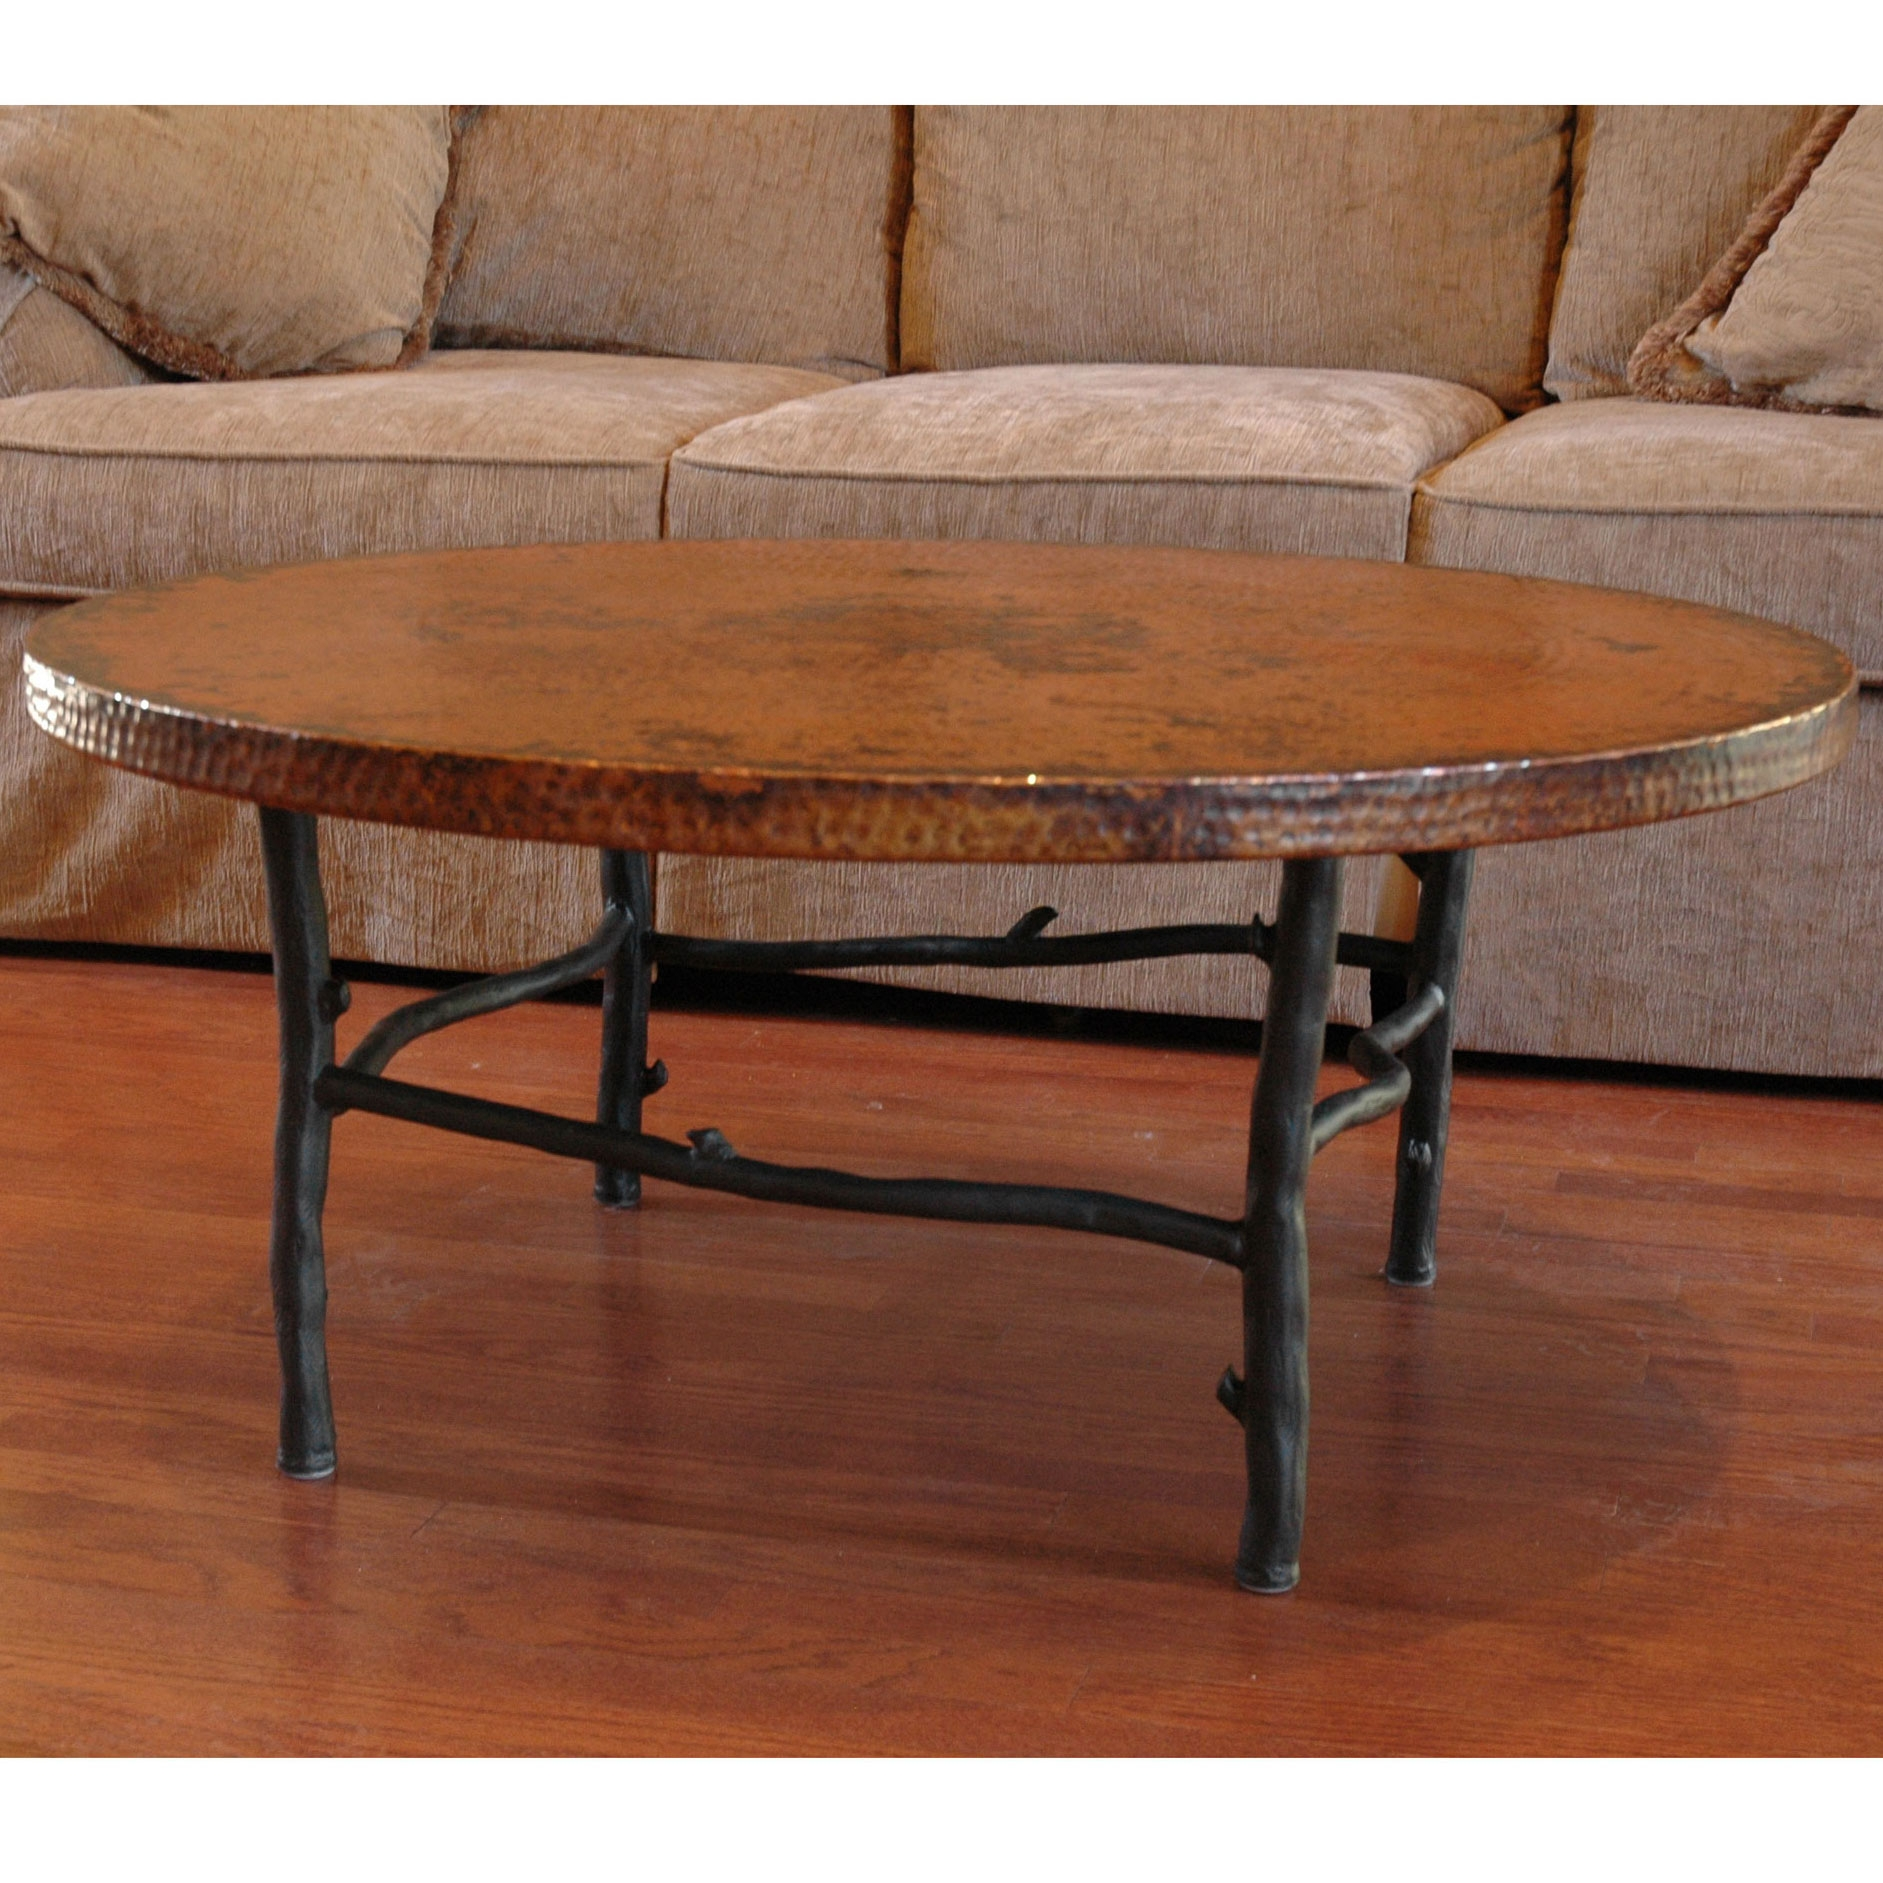 - Rustic South Fork Wrought Iron Coffee Table 42inches Round